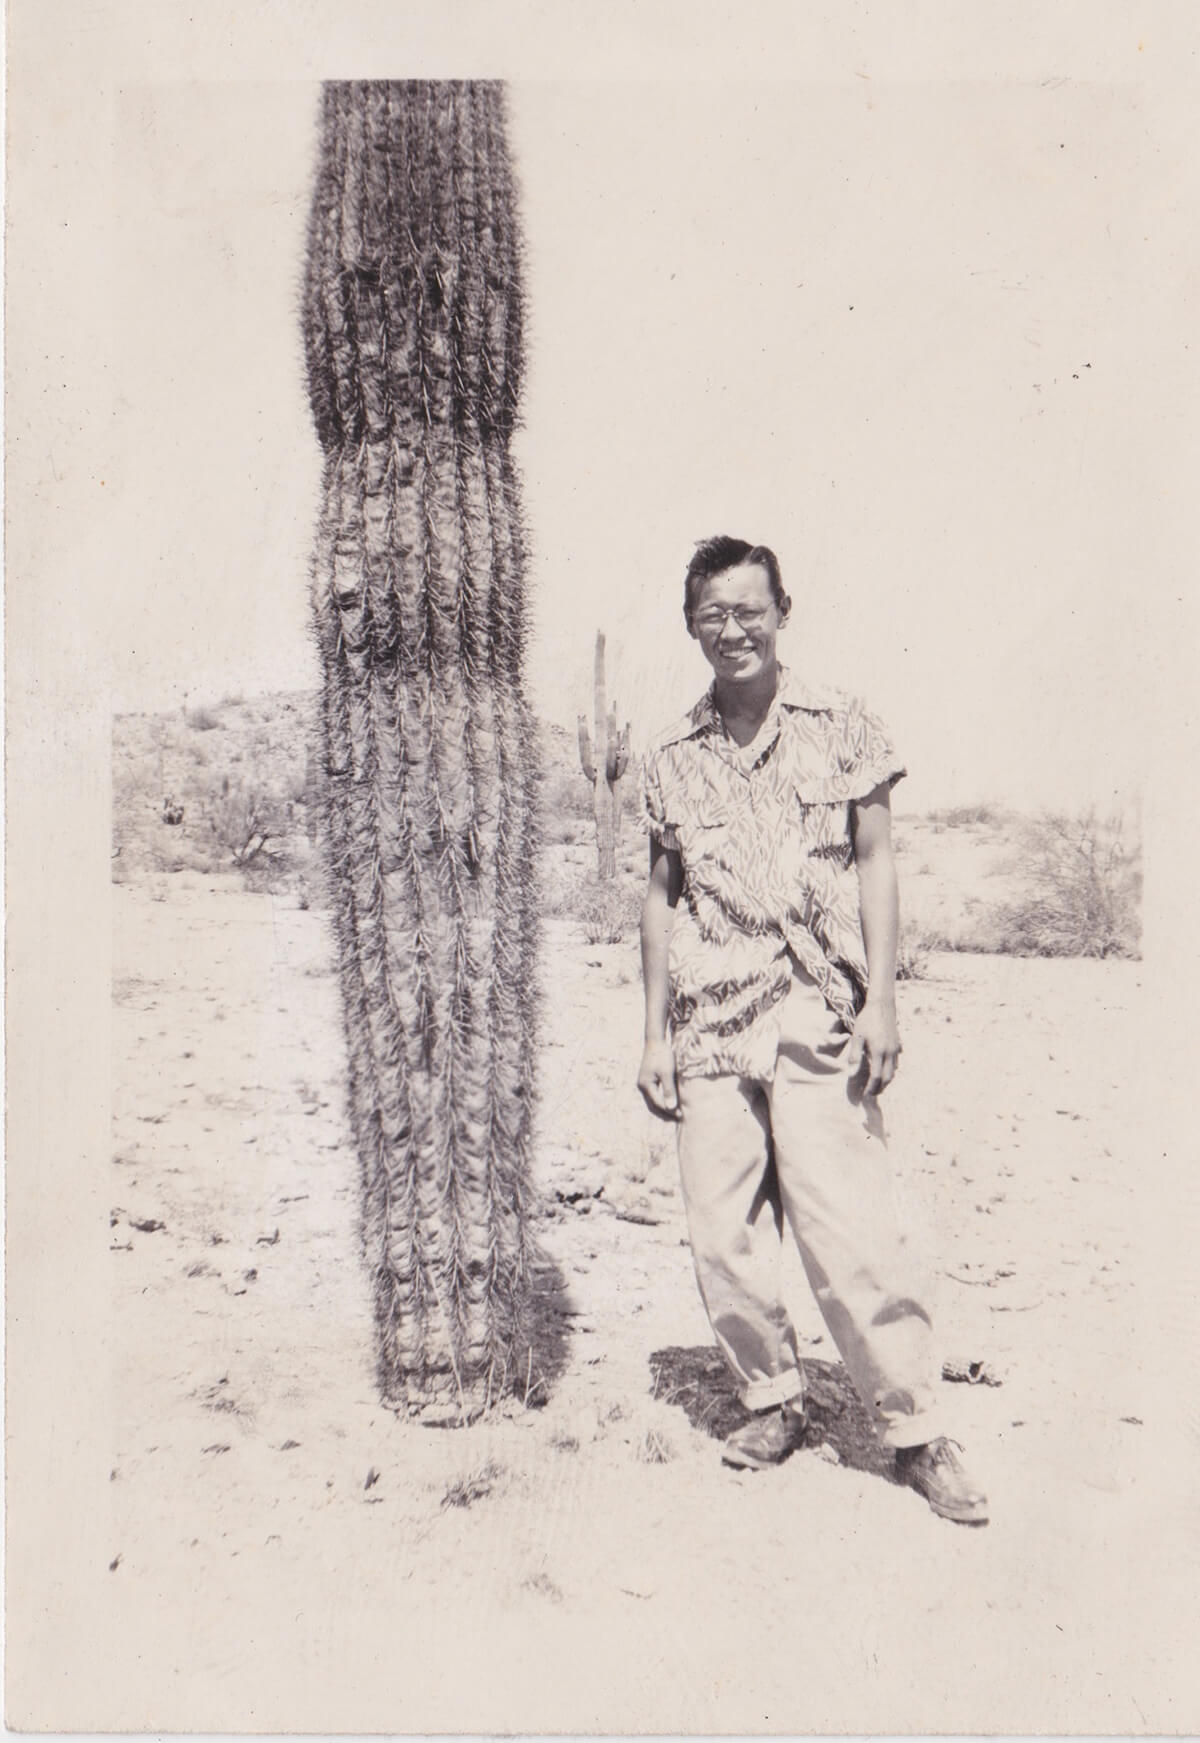 The author's grandfather as a young man in Gila Bend, Arizona.